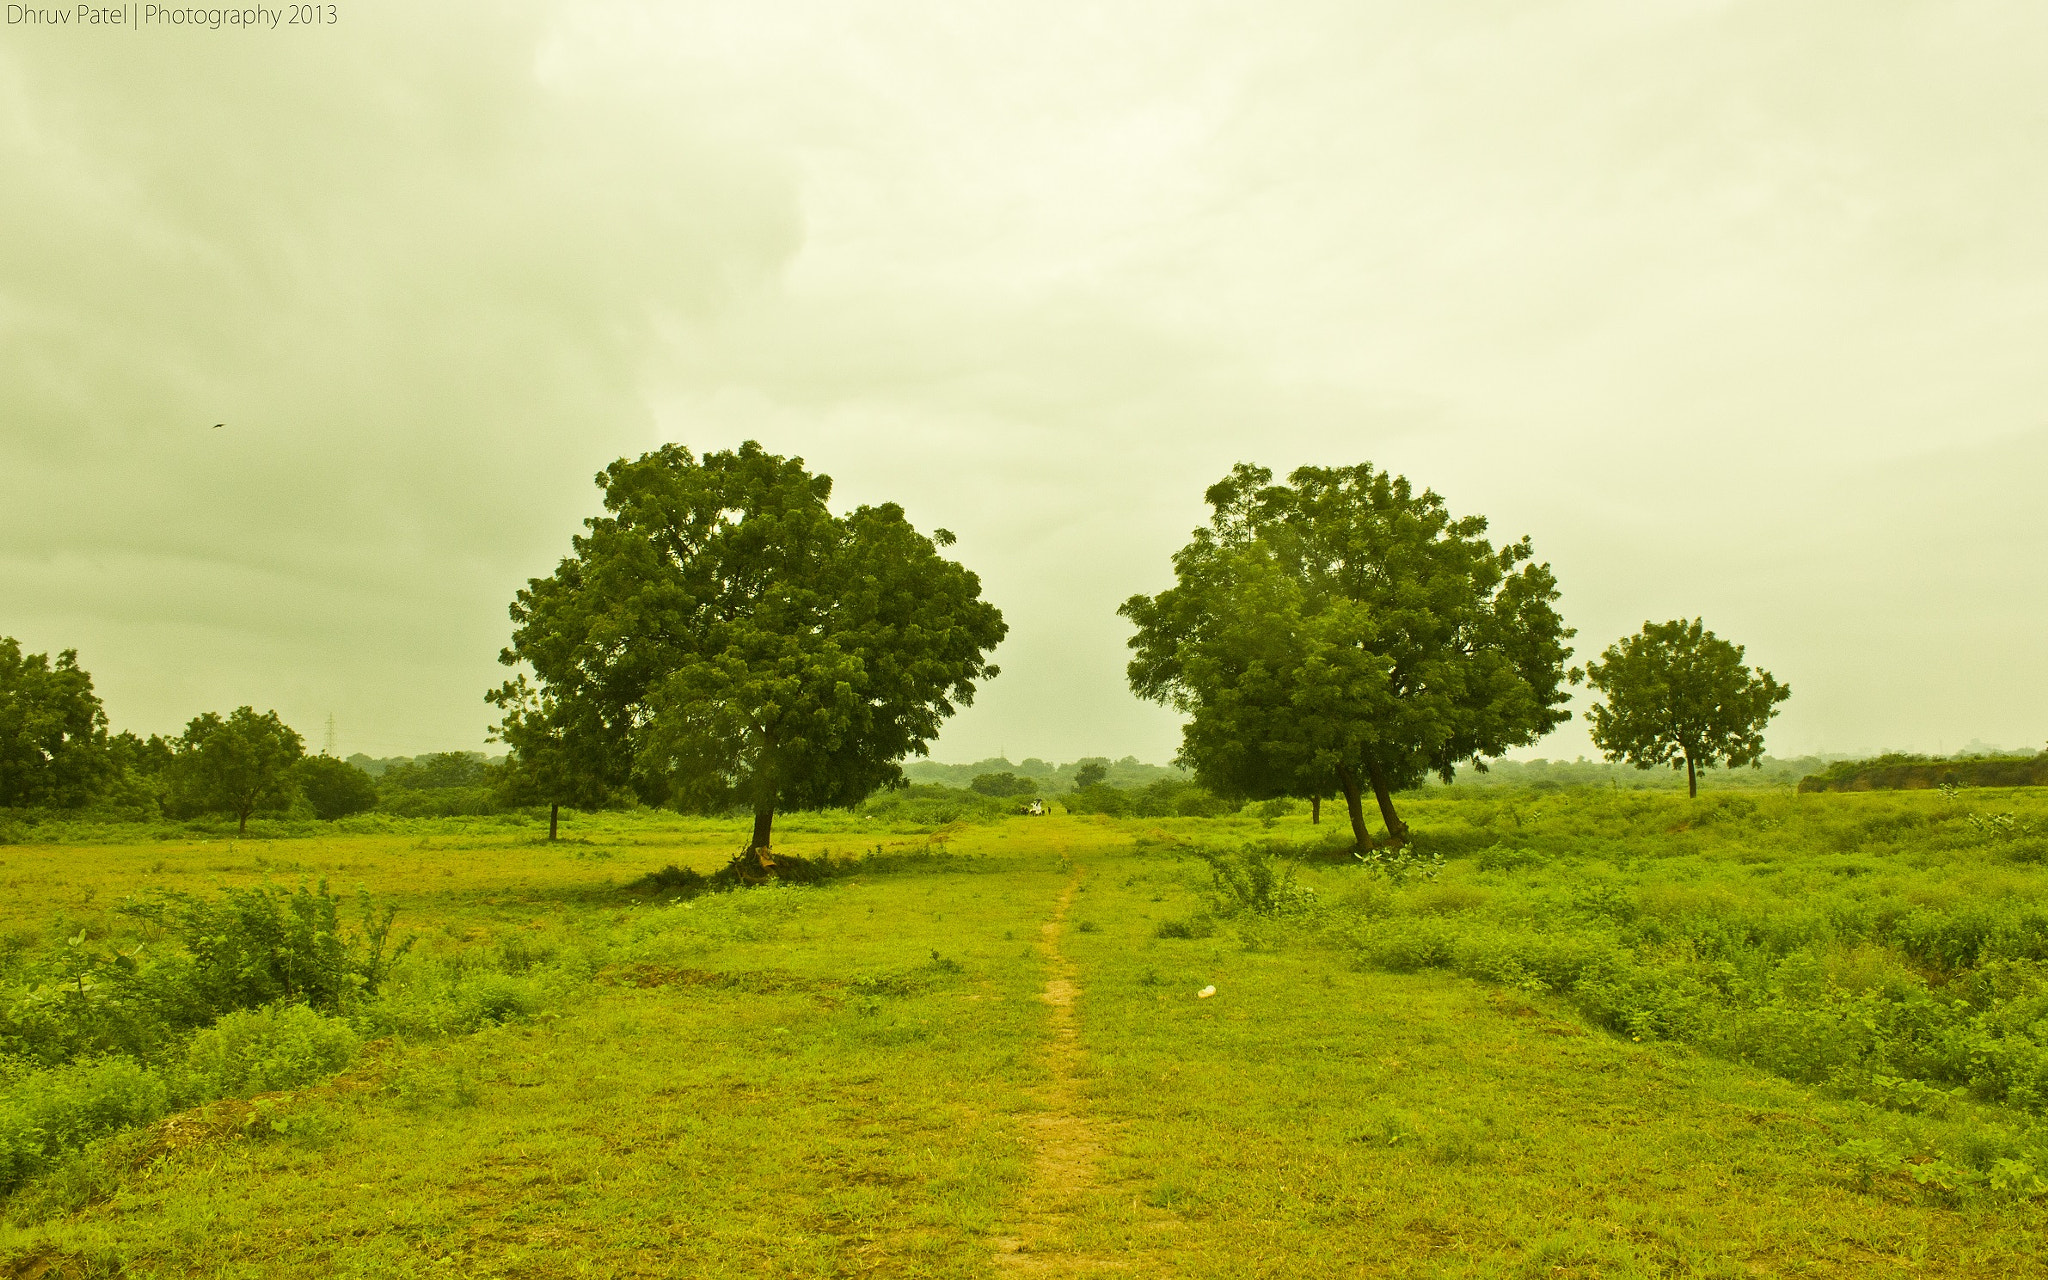 Photograph A Way To The Village by Dhruv Patel on 500px